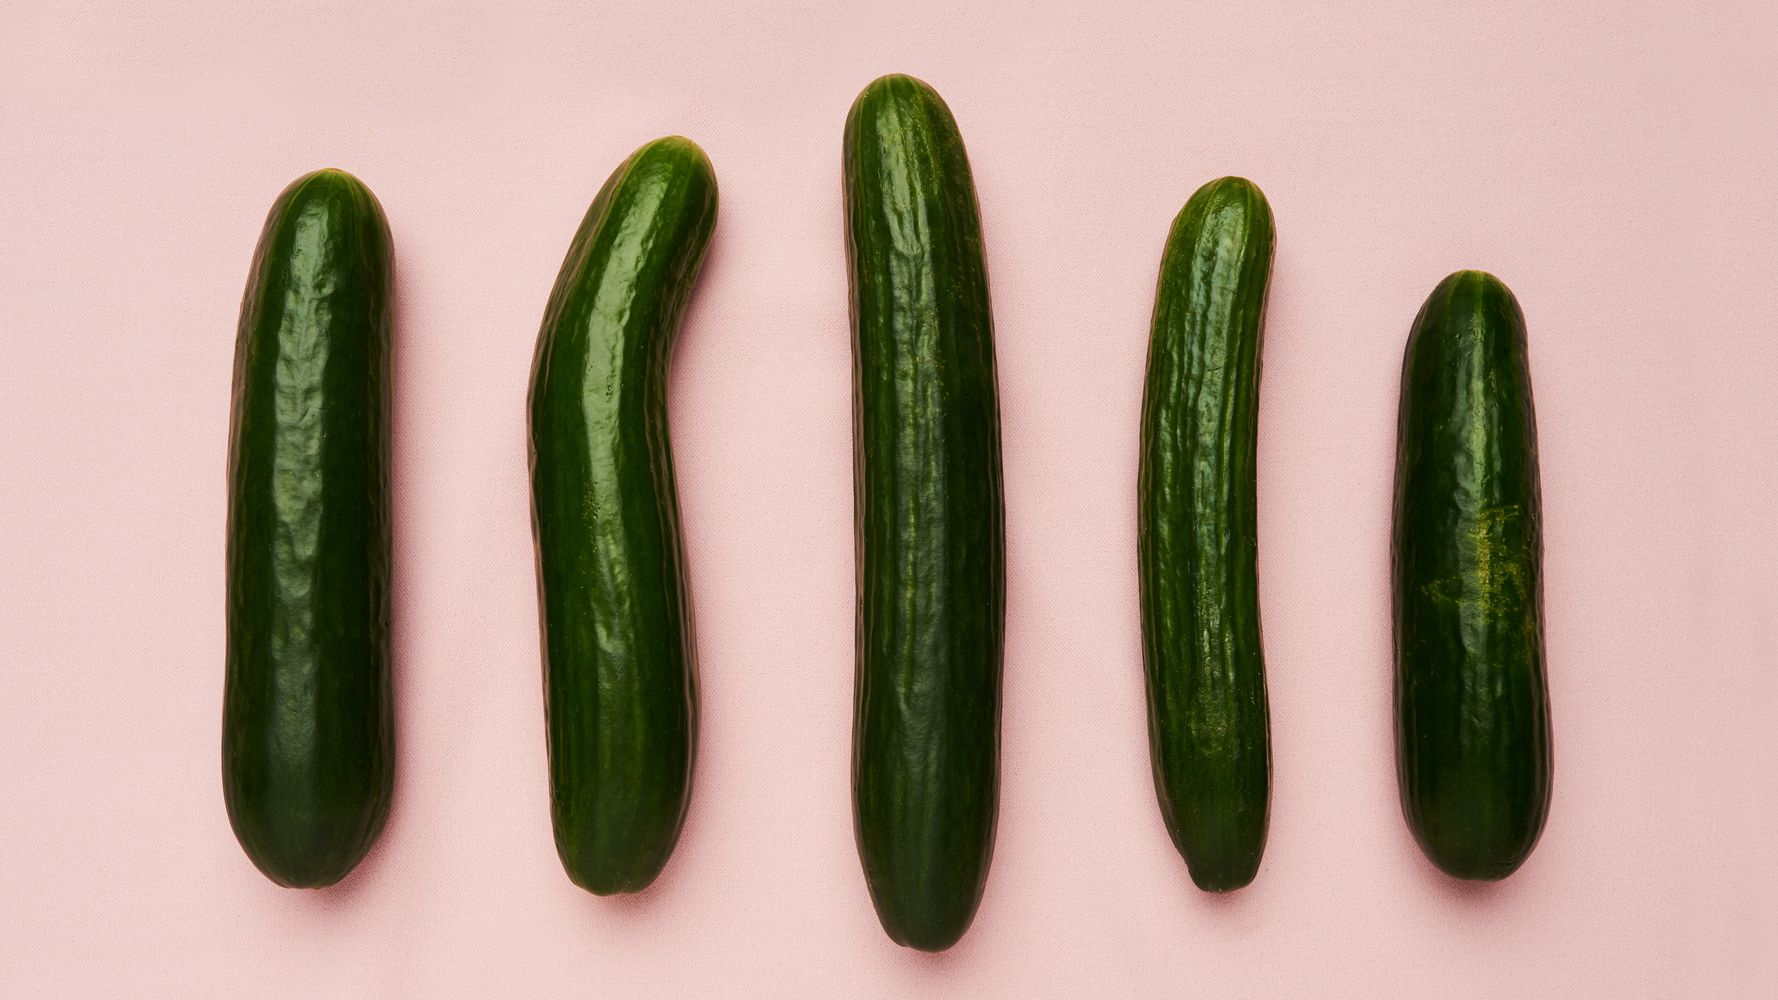 'Ideal For Valentine's': Saucy Cucumber Signs Found In Tesco Are Pretty Risqué